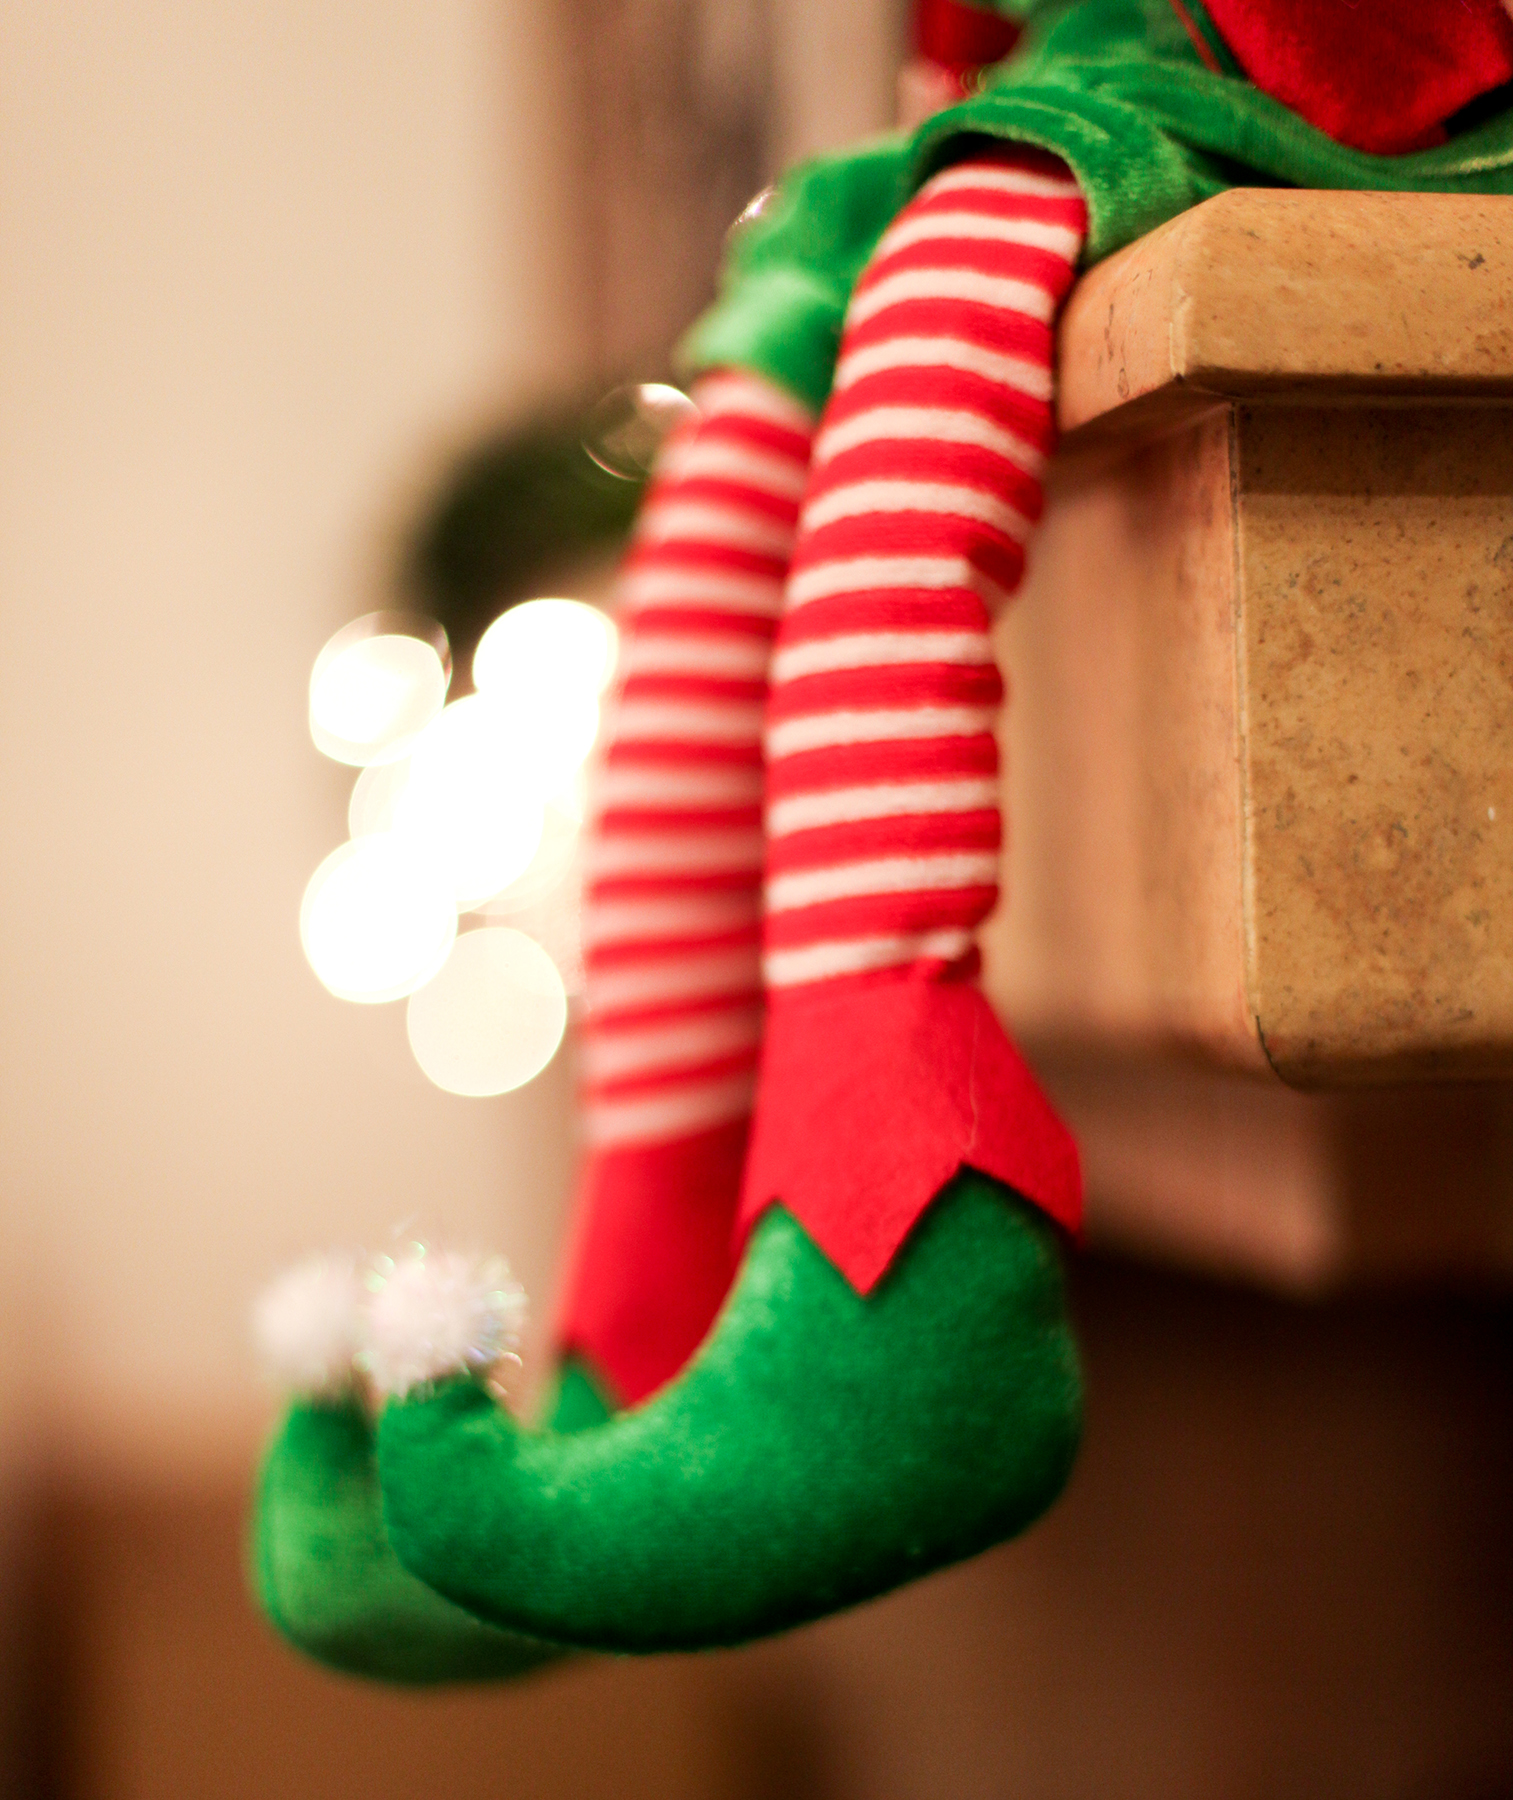 Elf on the Shelf? Not in My House!